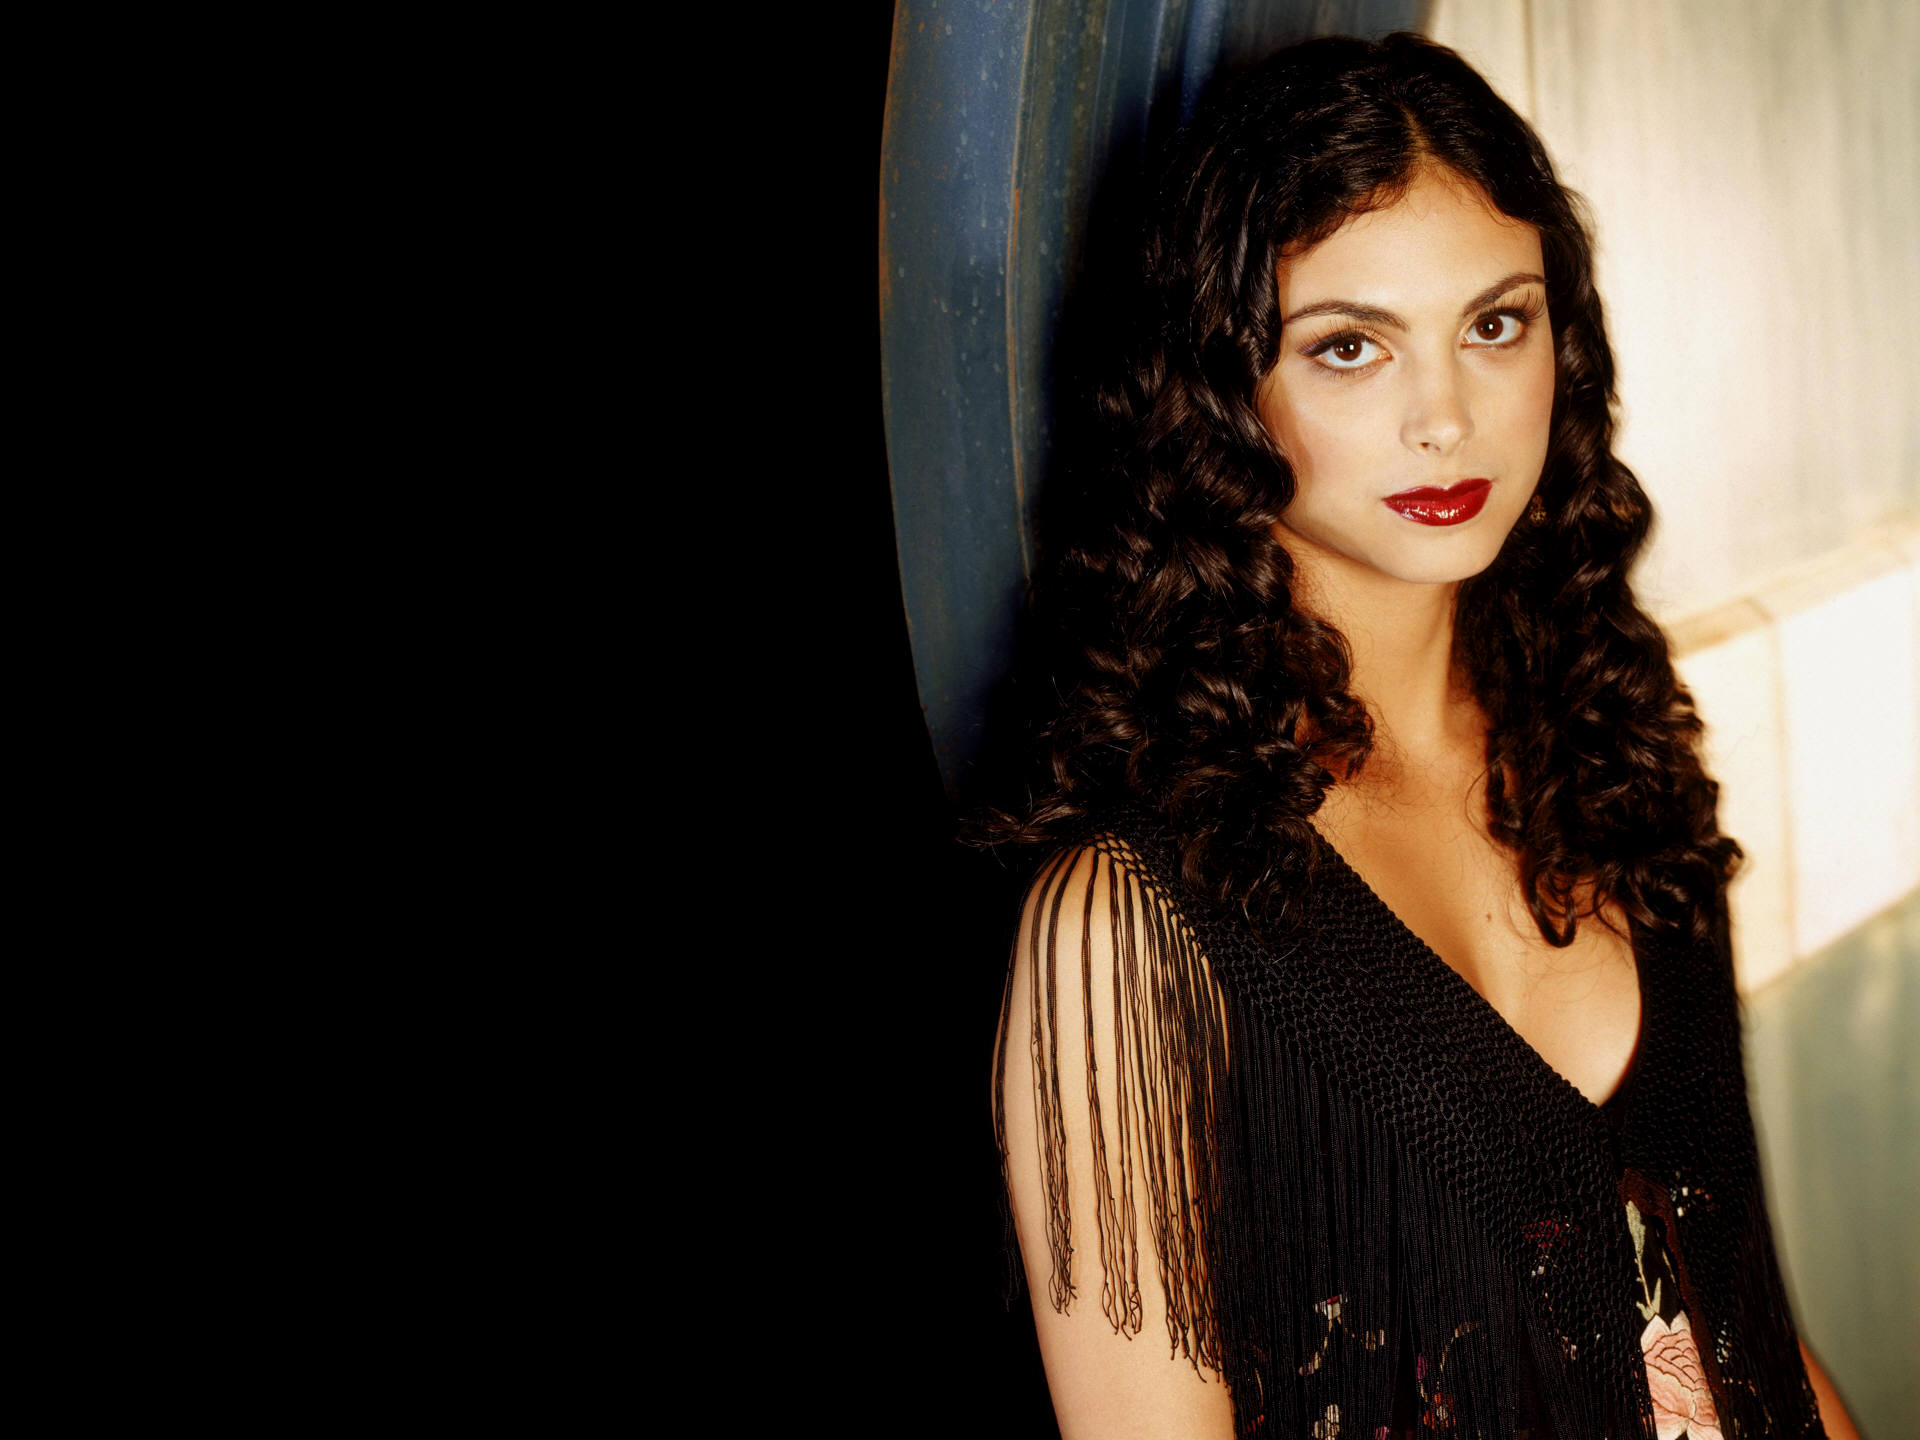 1920x1440 - Morena Baccarin Wallpapers 28